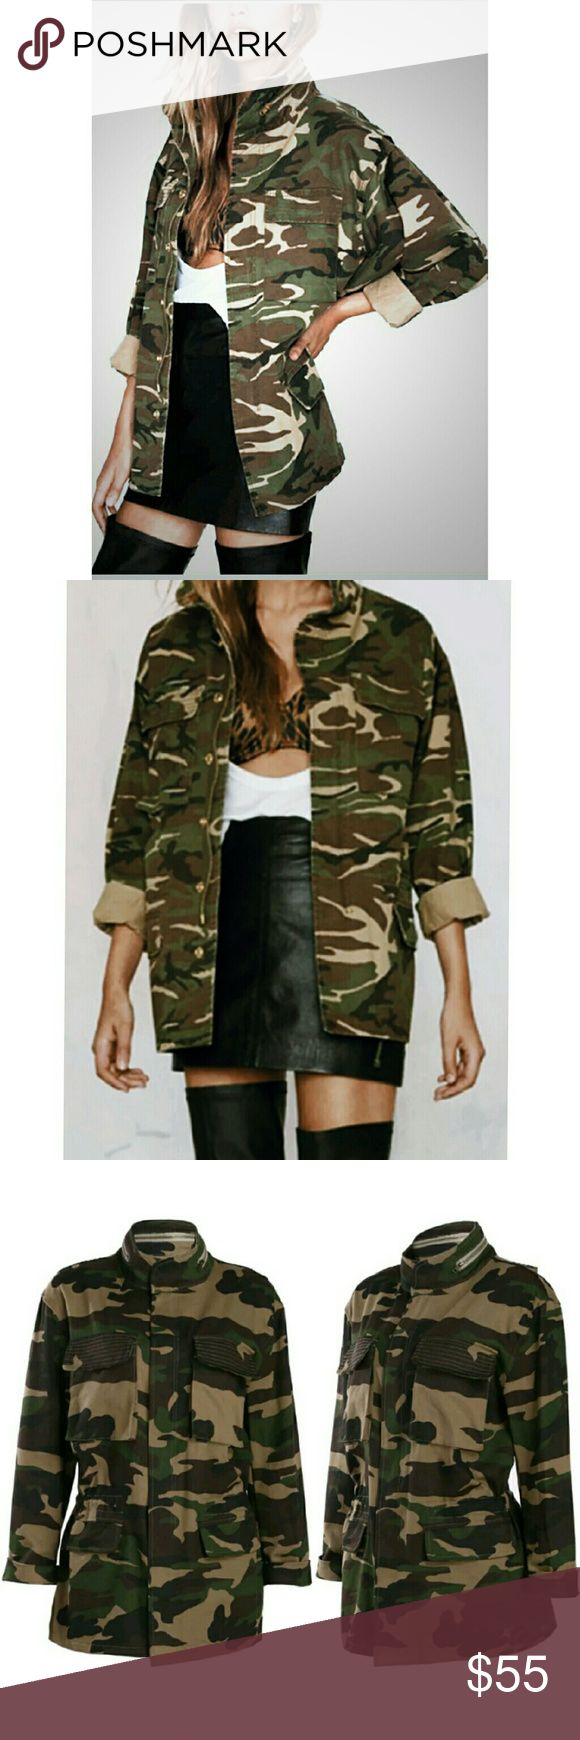 ⭐NEW! Camo Chic Bomber Jacket Size Small ❗LAST ONE❗  Super trendy statement piece! I love this!  Camouflage  Army Green Military Style High Quality Fabric  Polyester Blend  Wash low temperature Do not Bleach Size SMALL  NWOT Directly From Vendor   ▪ No Trades  ▪ Fast Shipping Moda Ragazza  Jackets & Coats Utility Jackets